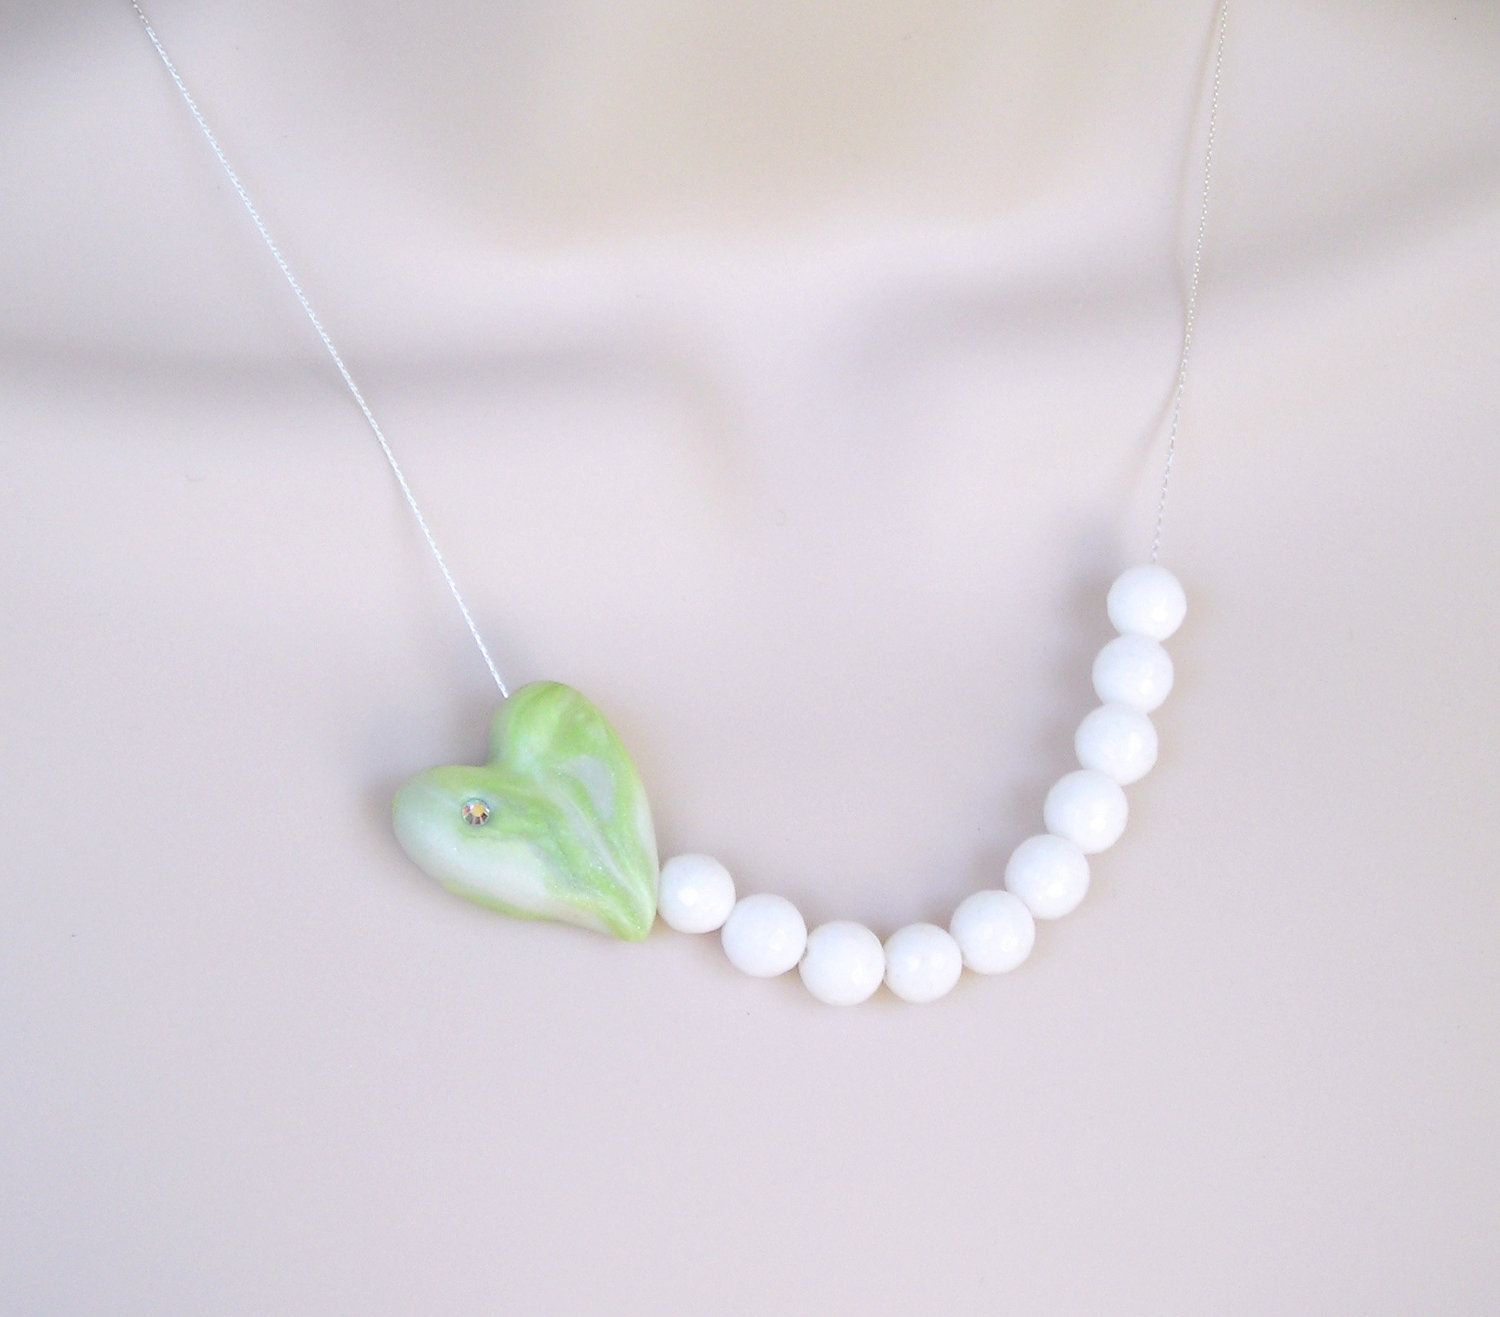 Green Clay Heart and White Beads Necklace Classic Handcrafted. $22.00, via Etsy.